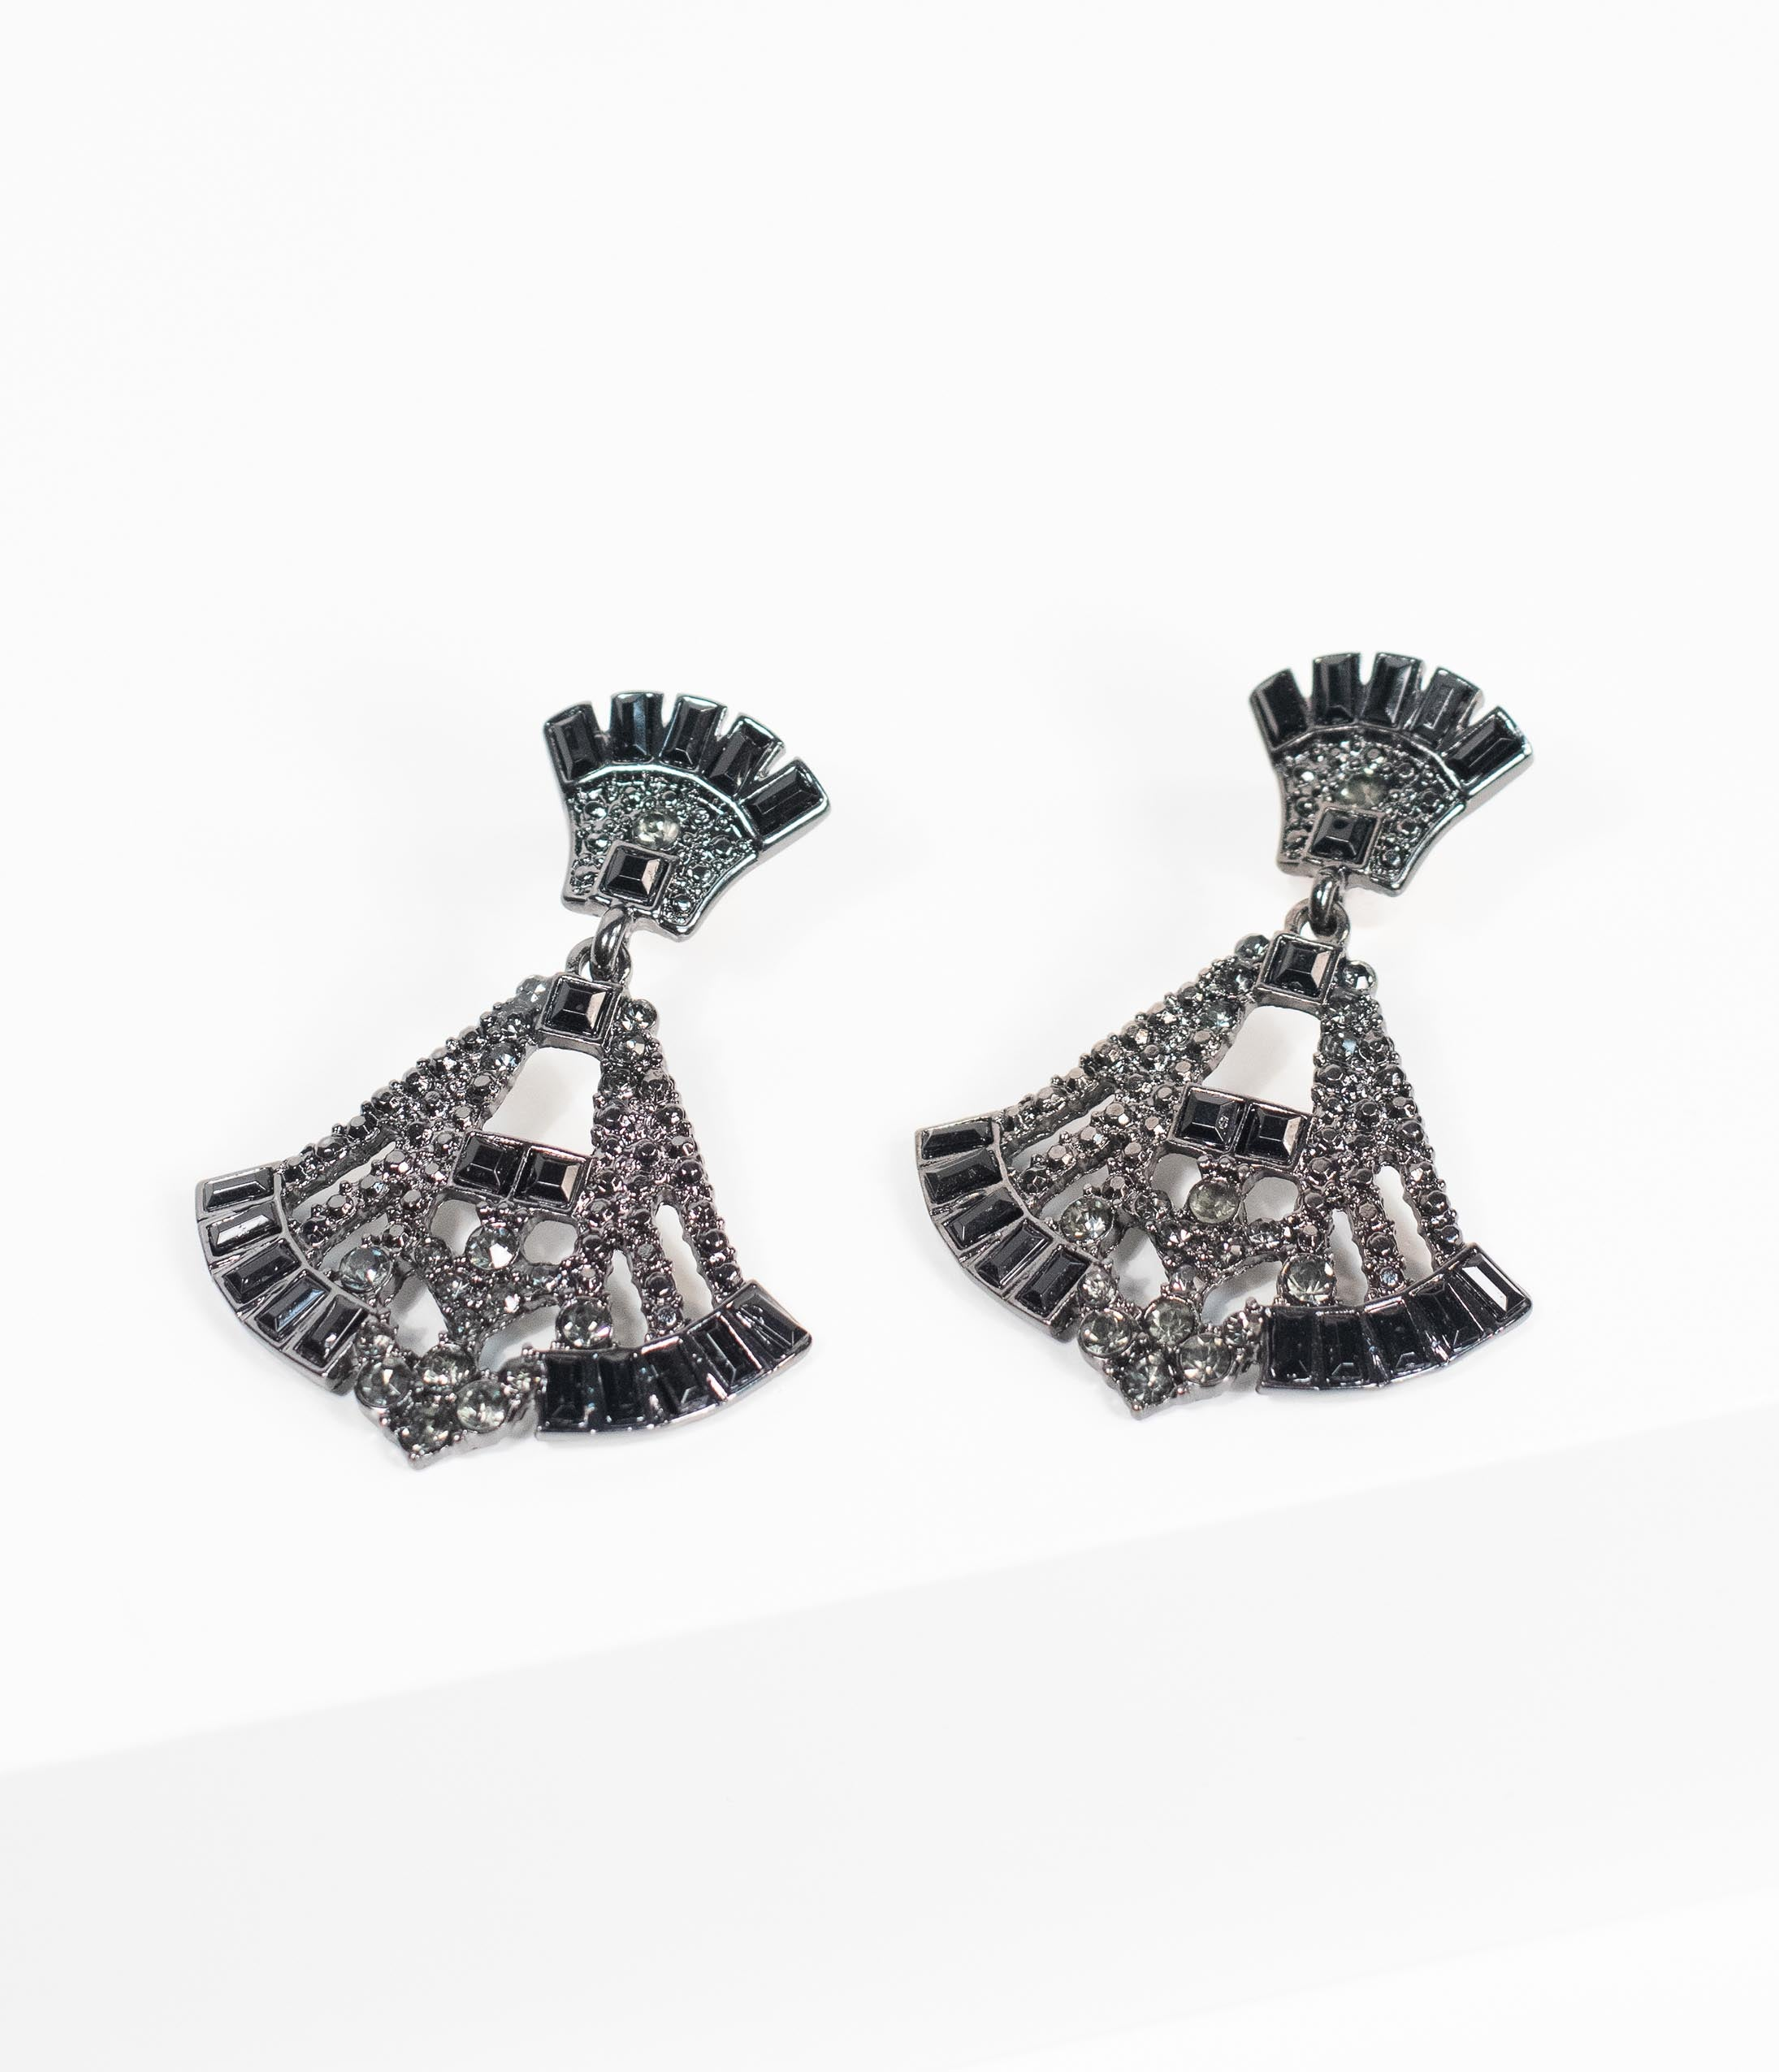 1920s Gatsby Jewelry- Flapper Earrings, Necklaces, Bracelets Deco Style Black Rhinestone Drop Fan Earrings $22.00 AT vintagedancer.com